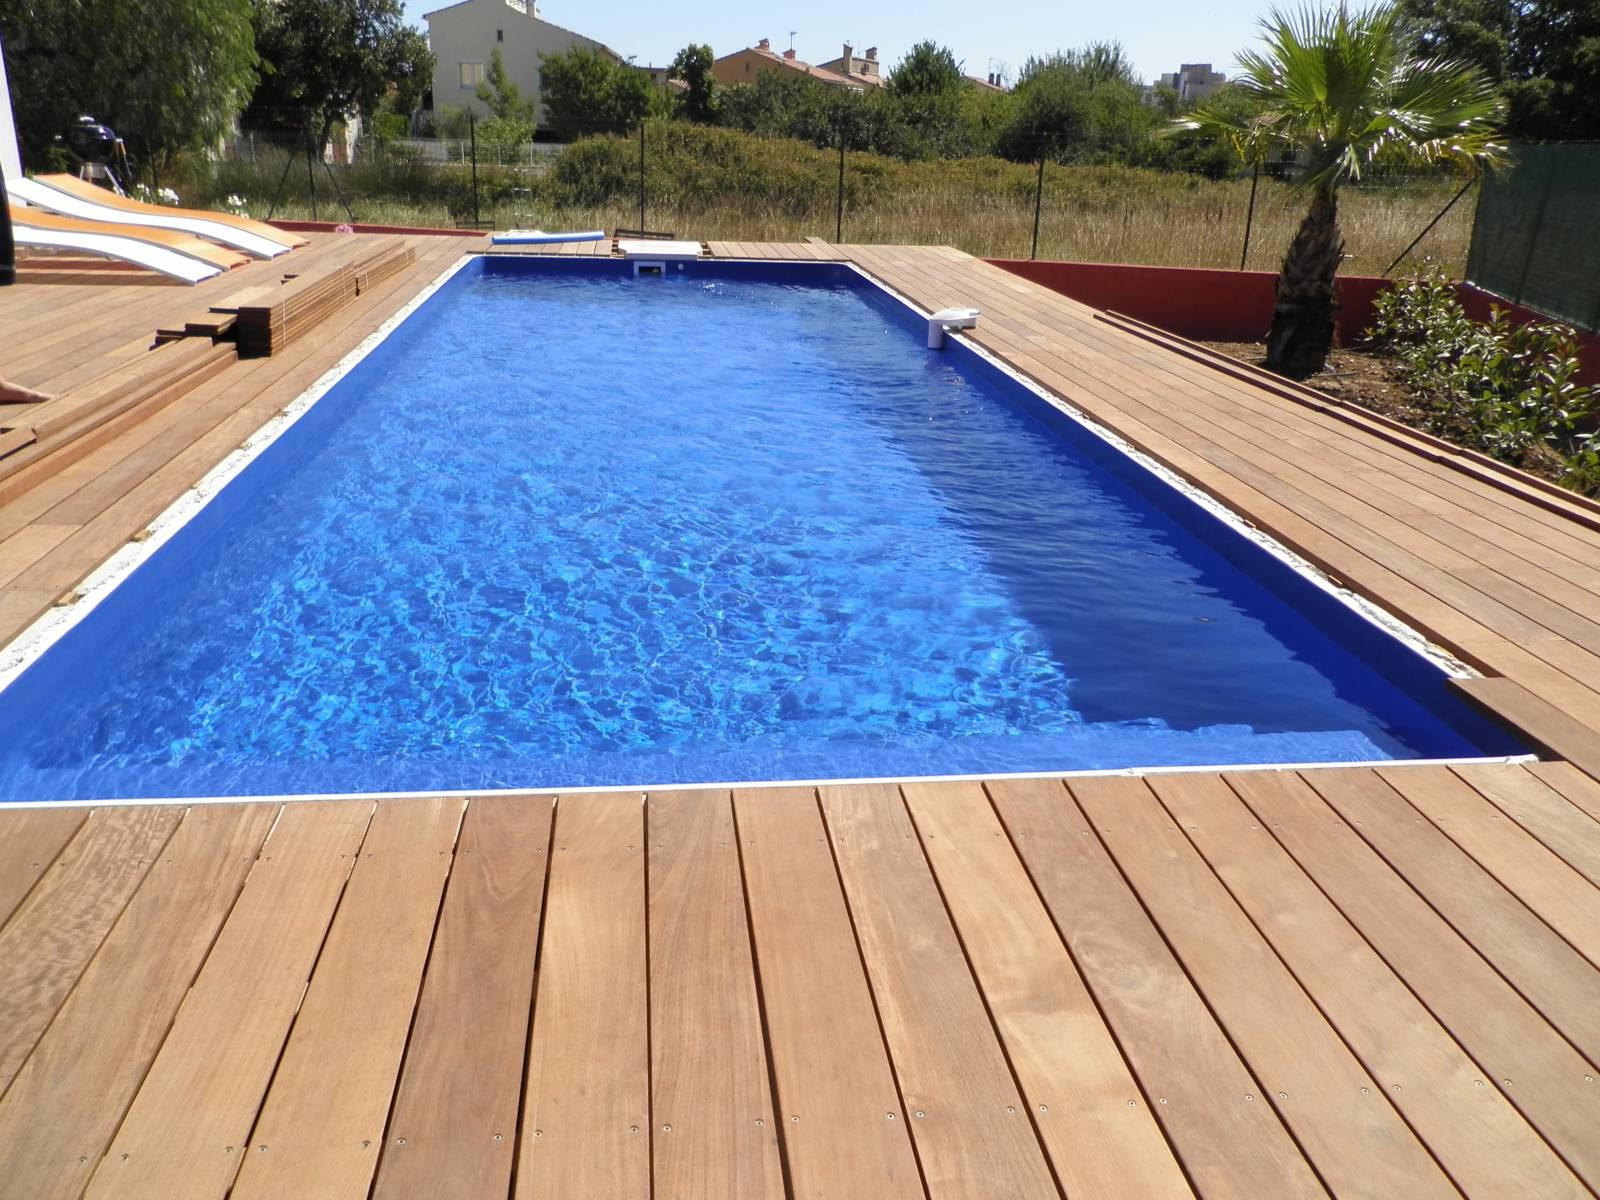 Piscine 8x4 m bleu france jce piscines for Piscine 8x4